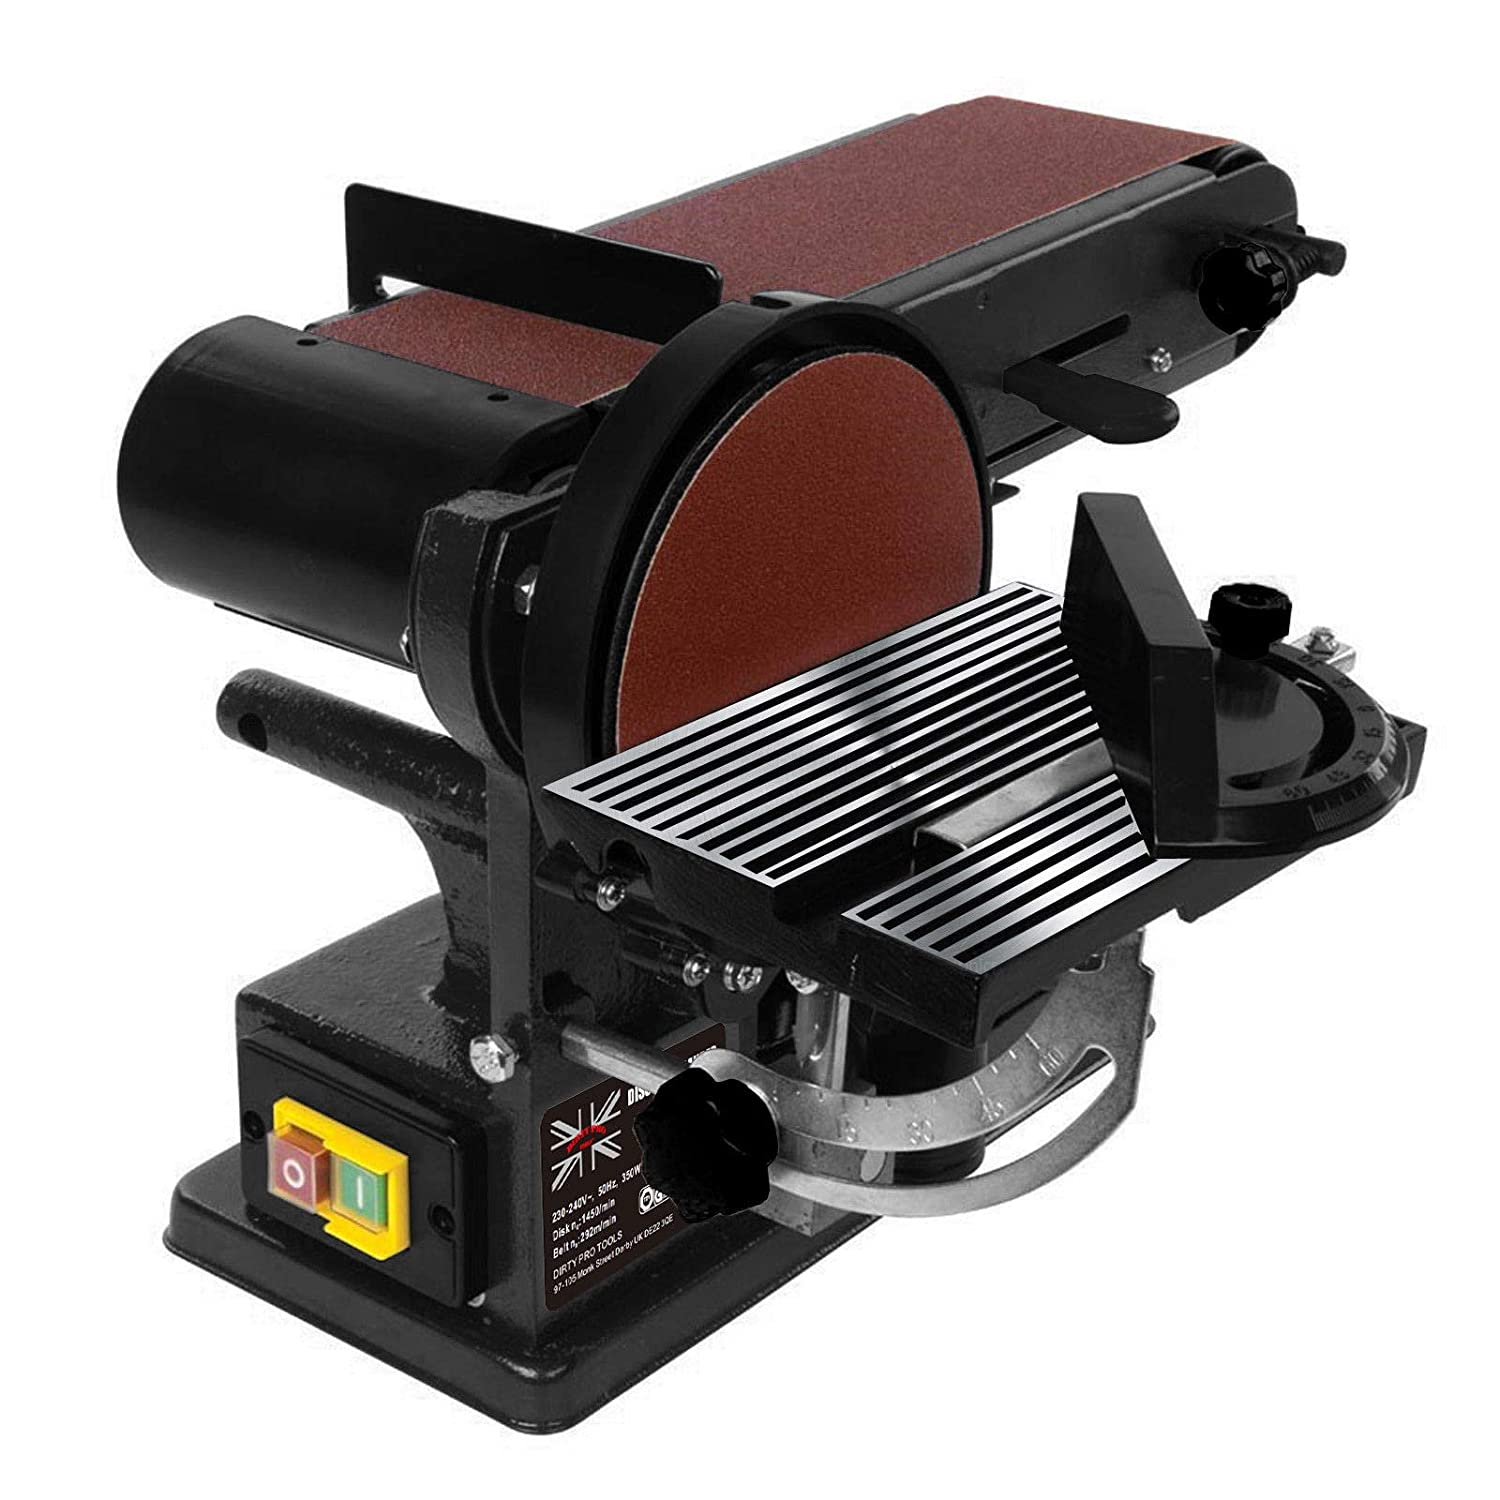 Superb Powerful 350W Bench Belt And Disc Sander 390Mm Sander Sanding Machost Co Dining Chair Design Ideas Machostcouk